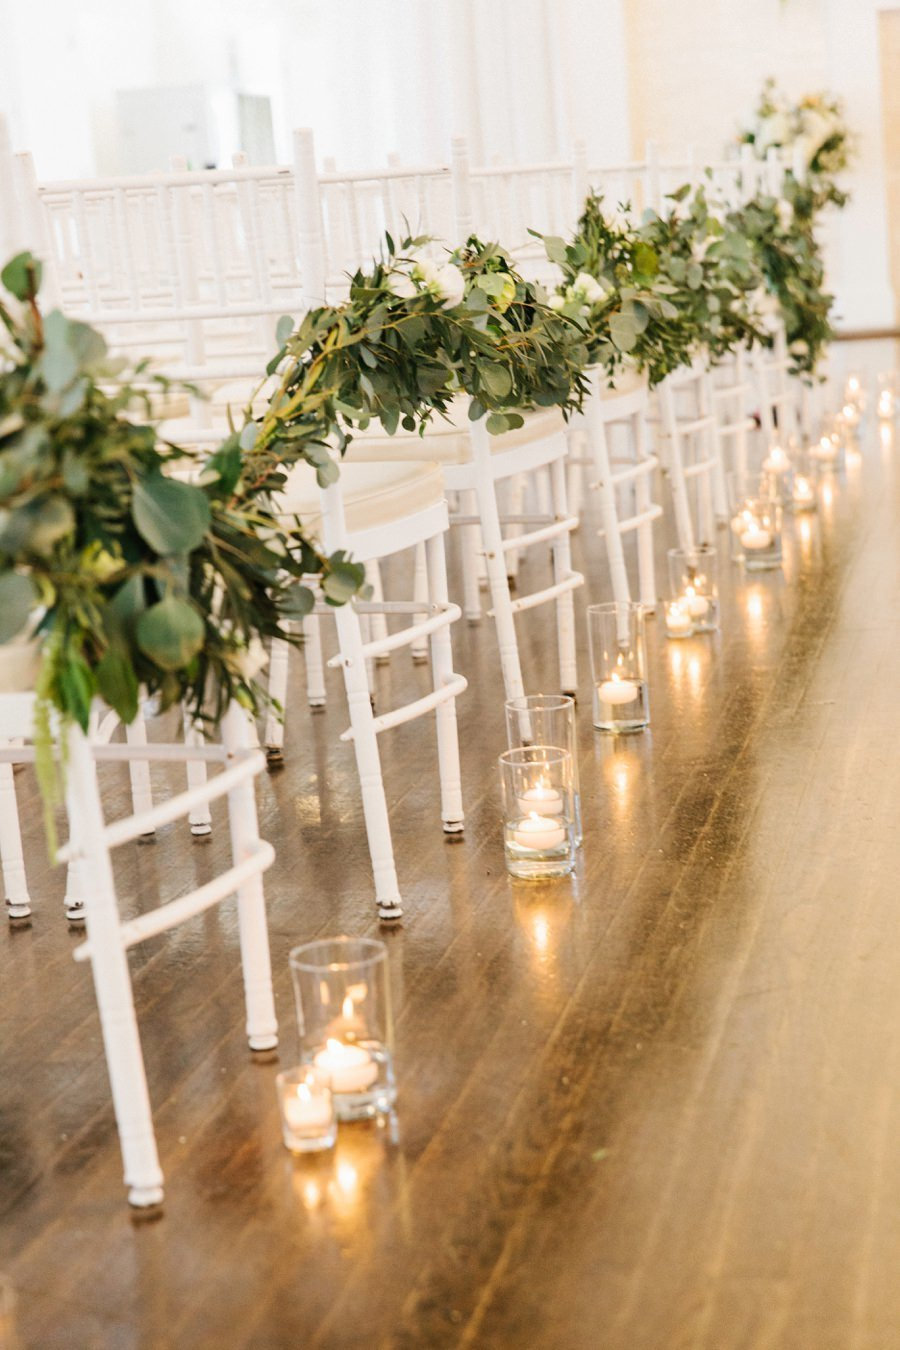 Modern & clean indoor wedding ceremony aisle decor at Belle Mer in Newport, RI